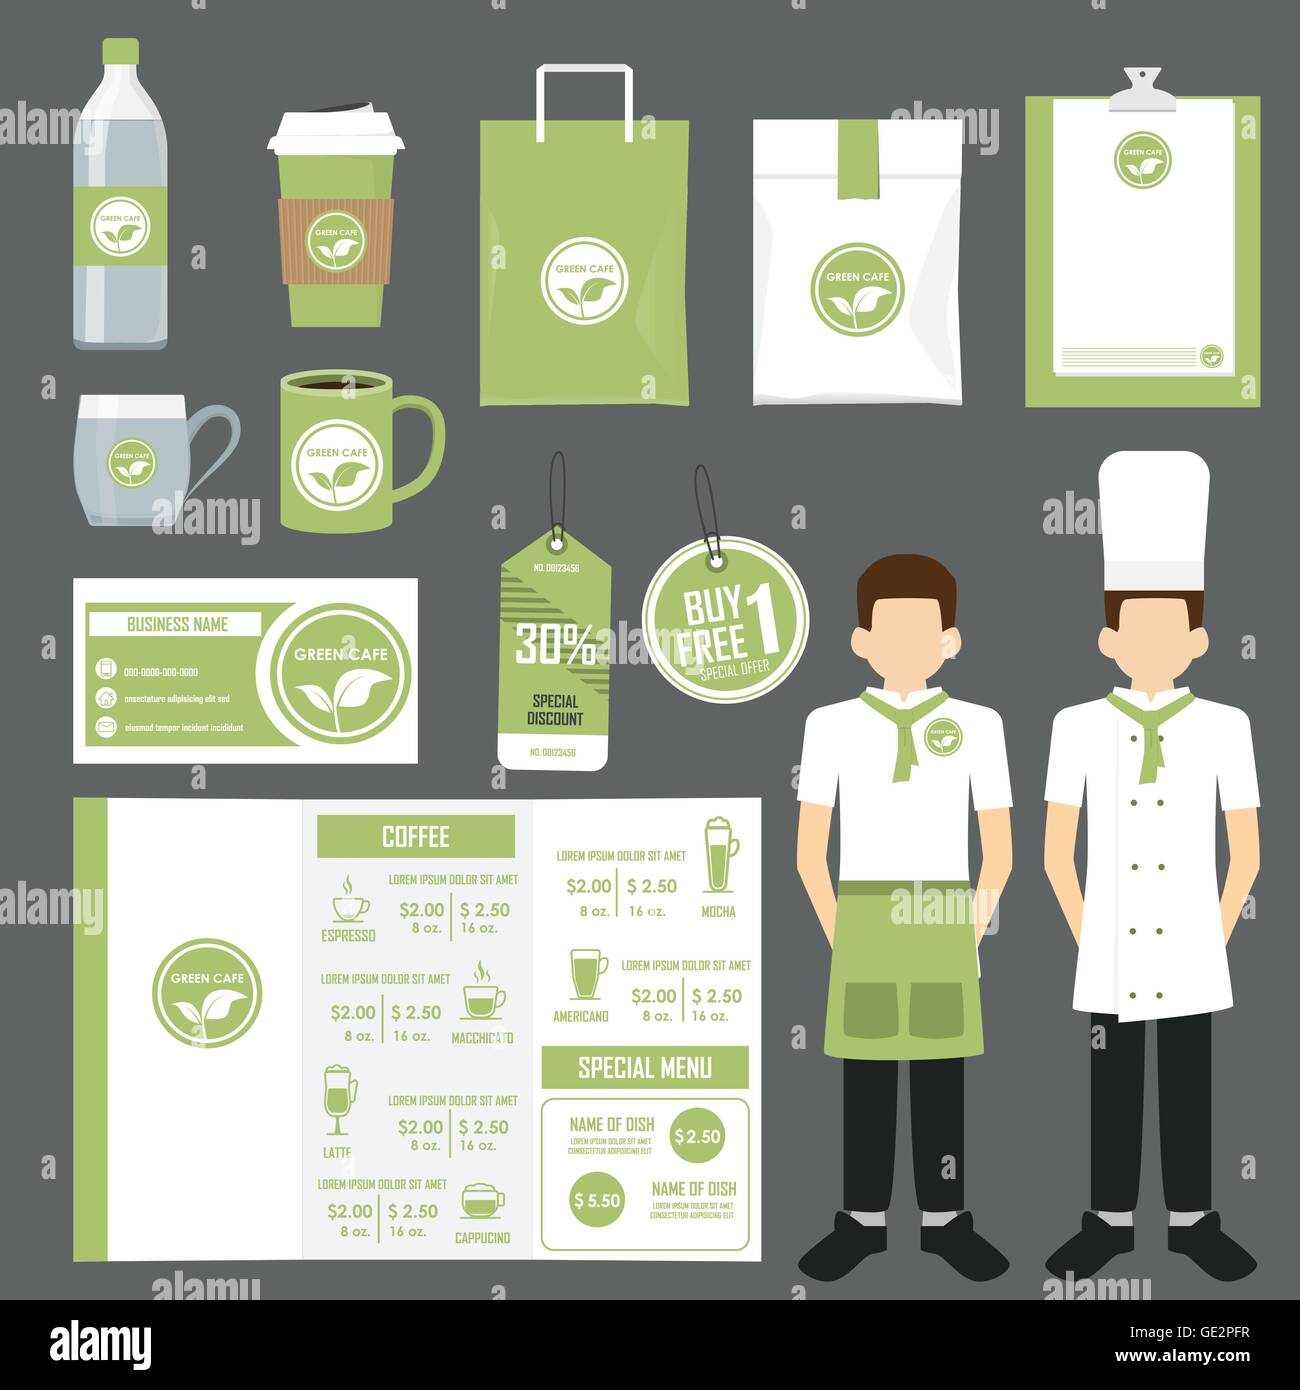 Restaurant coffee shop and cafe design flyer menu package stock restaurant coffee shop and cafe design flyer menu package business card uniform and display layout set of corporate identi reheart Choice Image